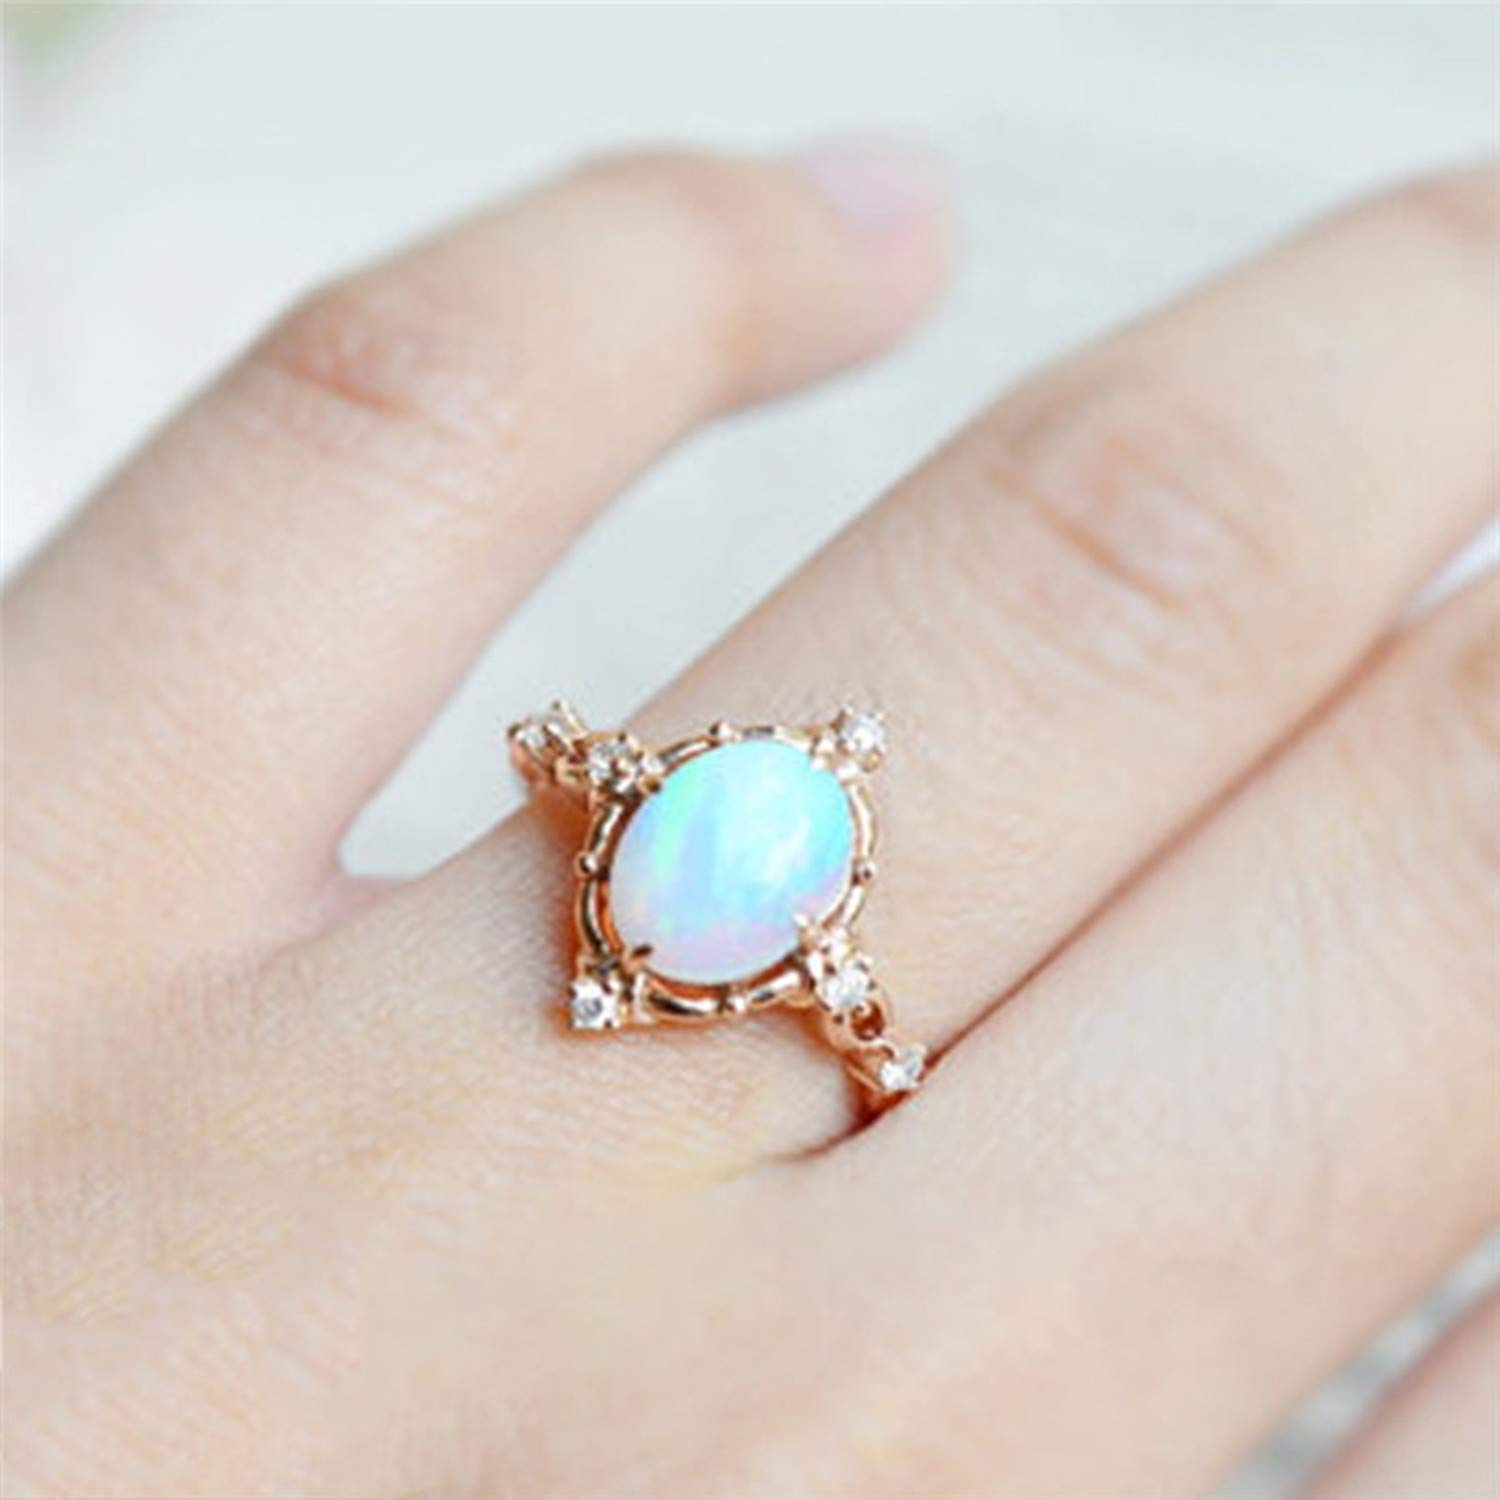 Amazon.com: JEWH Floral Opal Rings for Women - Vintage ...